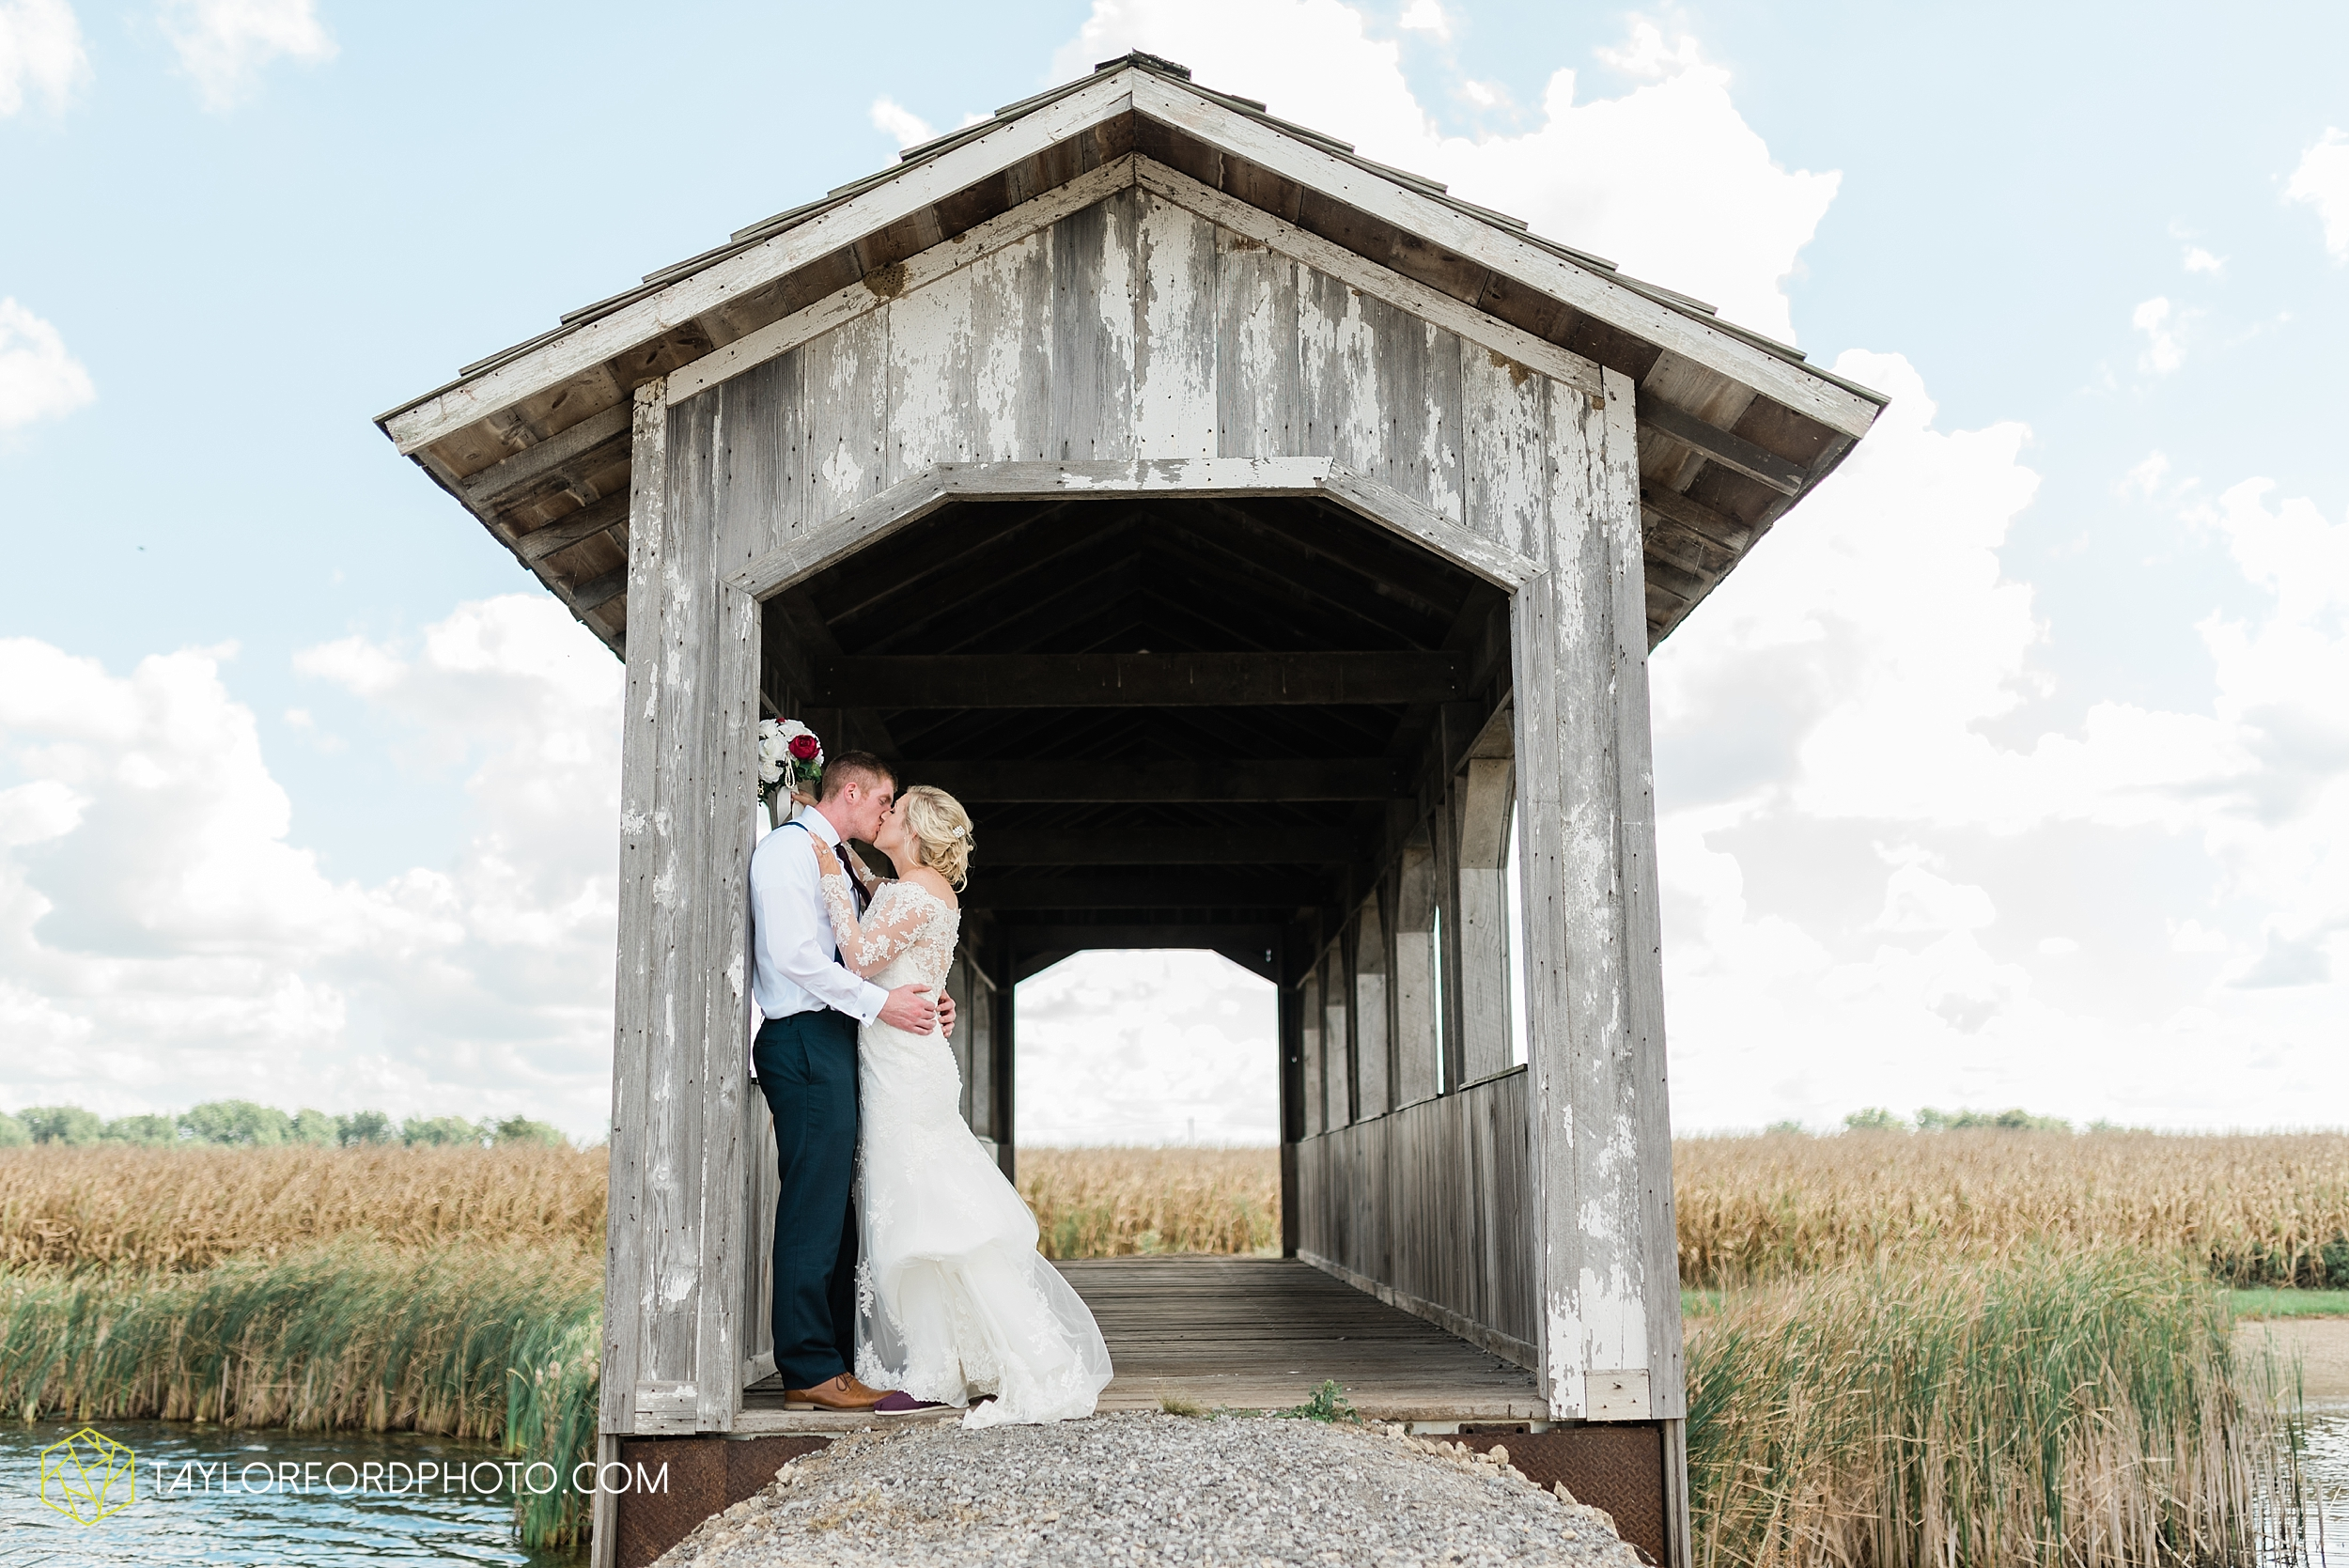 gayle-rayman-mike-steele-ottoville-ohio-wedding-immaculate-conception-parish-center-wedding-sycamore-lake-winery-wannamachers-photographer-taylor-ford-photography_0409.jpg